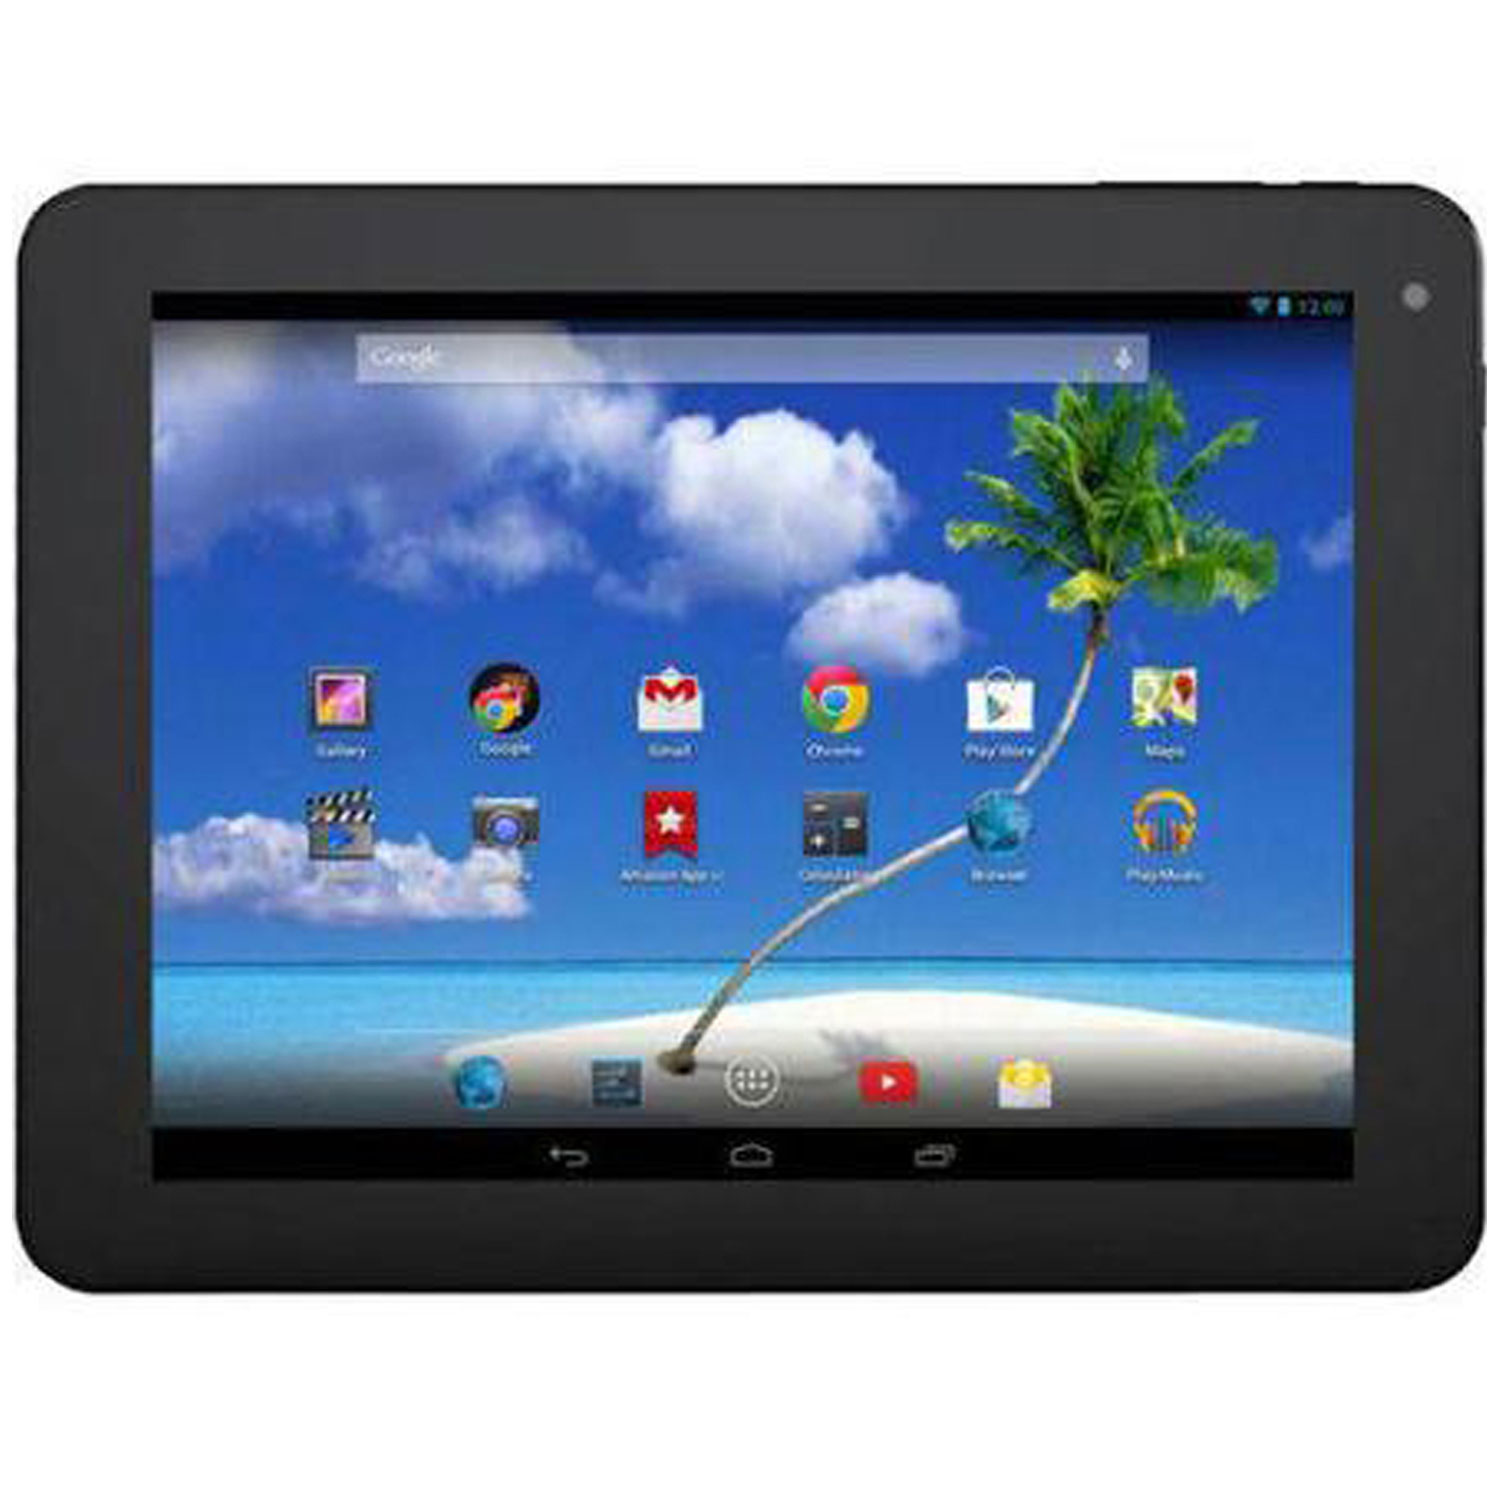 "Proscan PLT1077G with WiFi 10"" Touchscreen Tablet PC Featuring Android 4.4 (KitKat) Operating System"